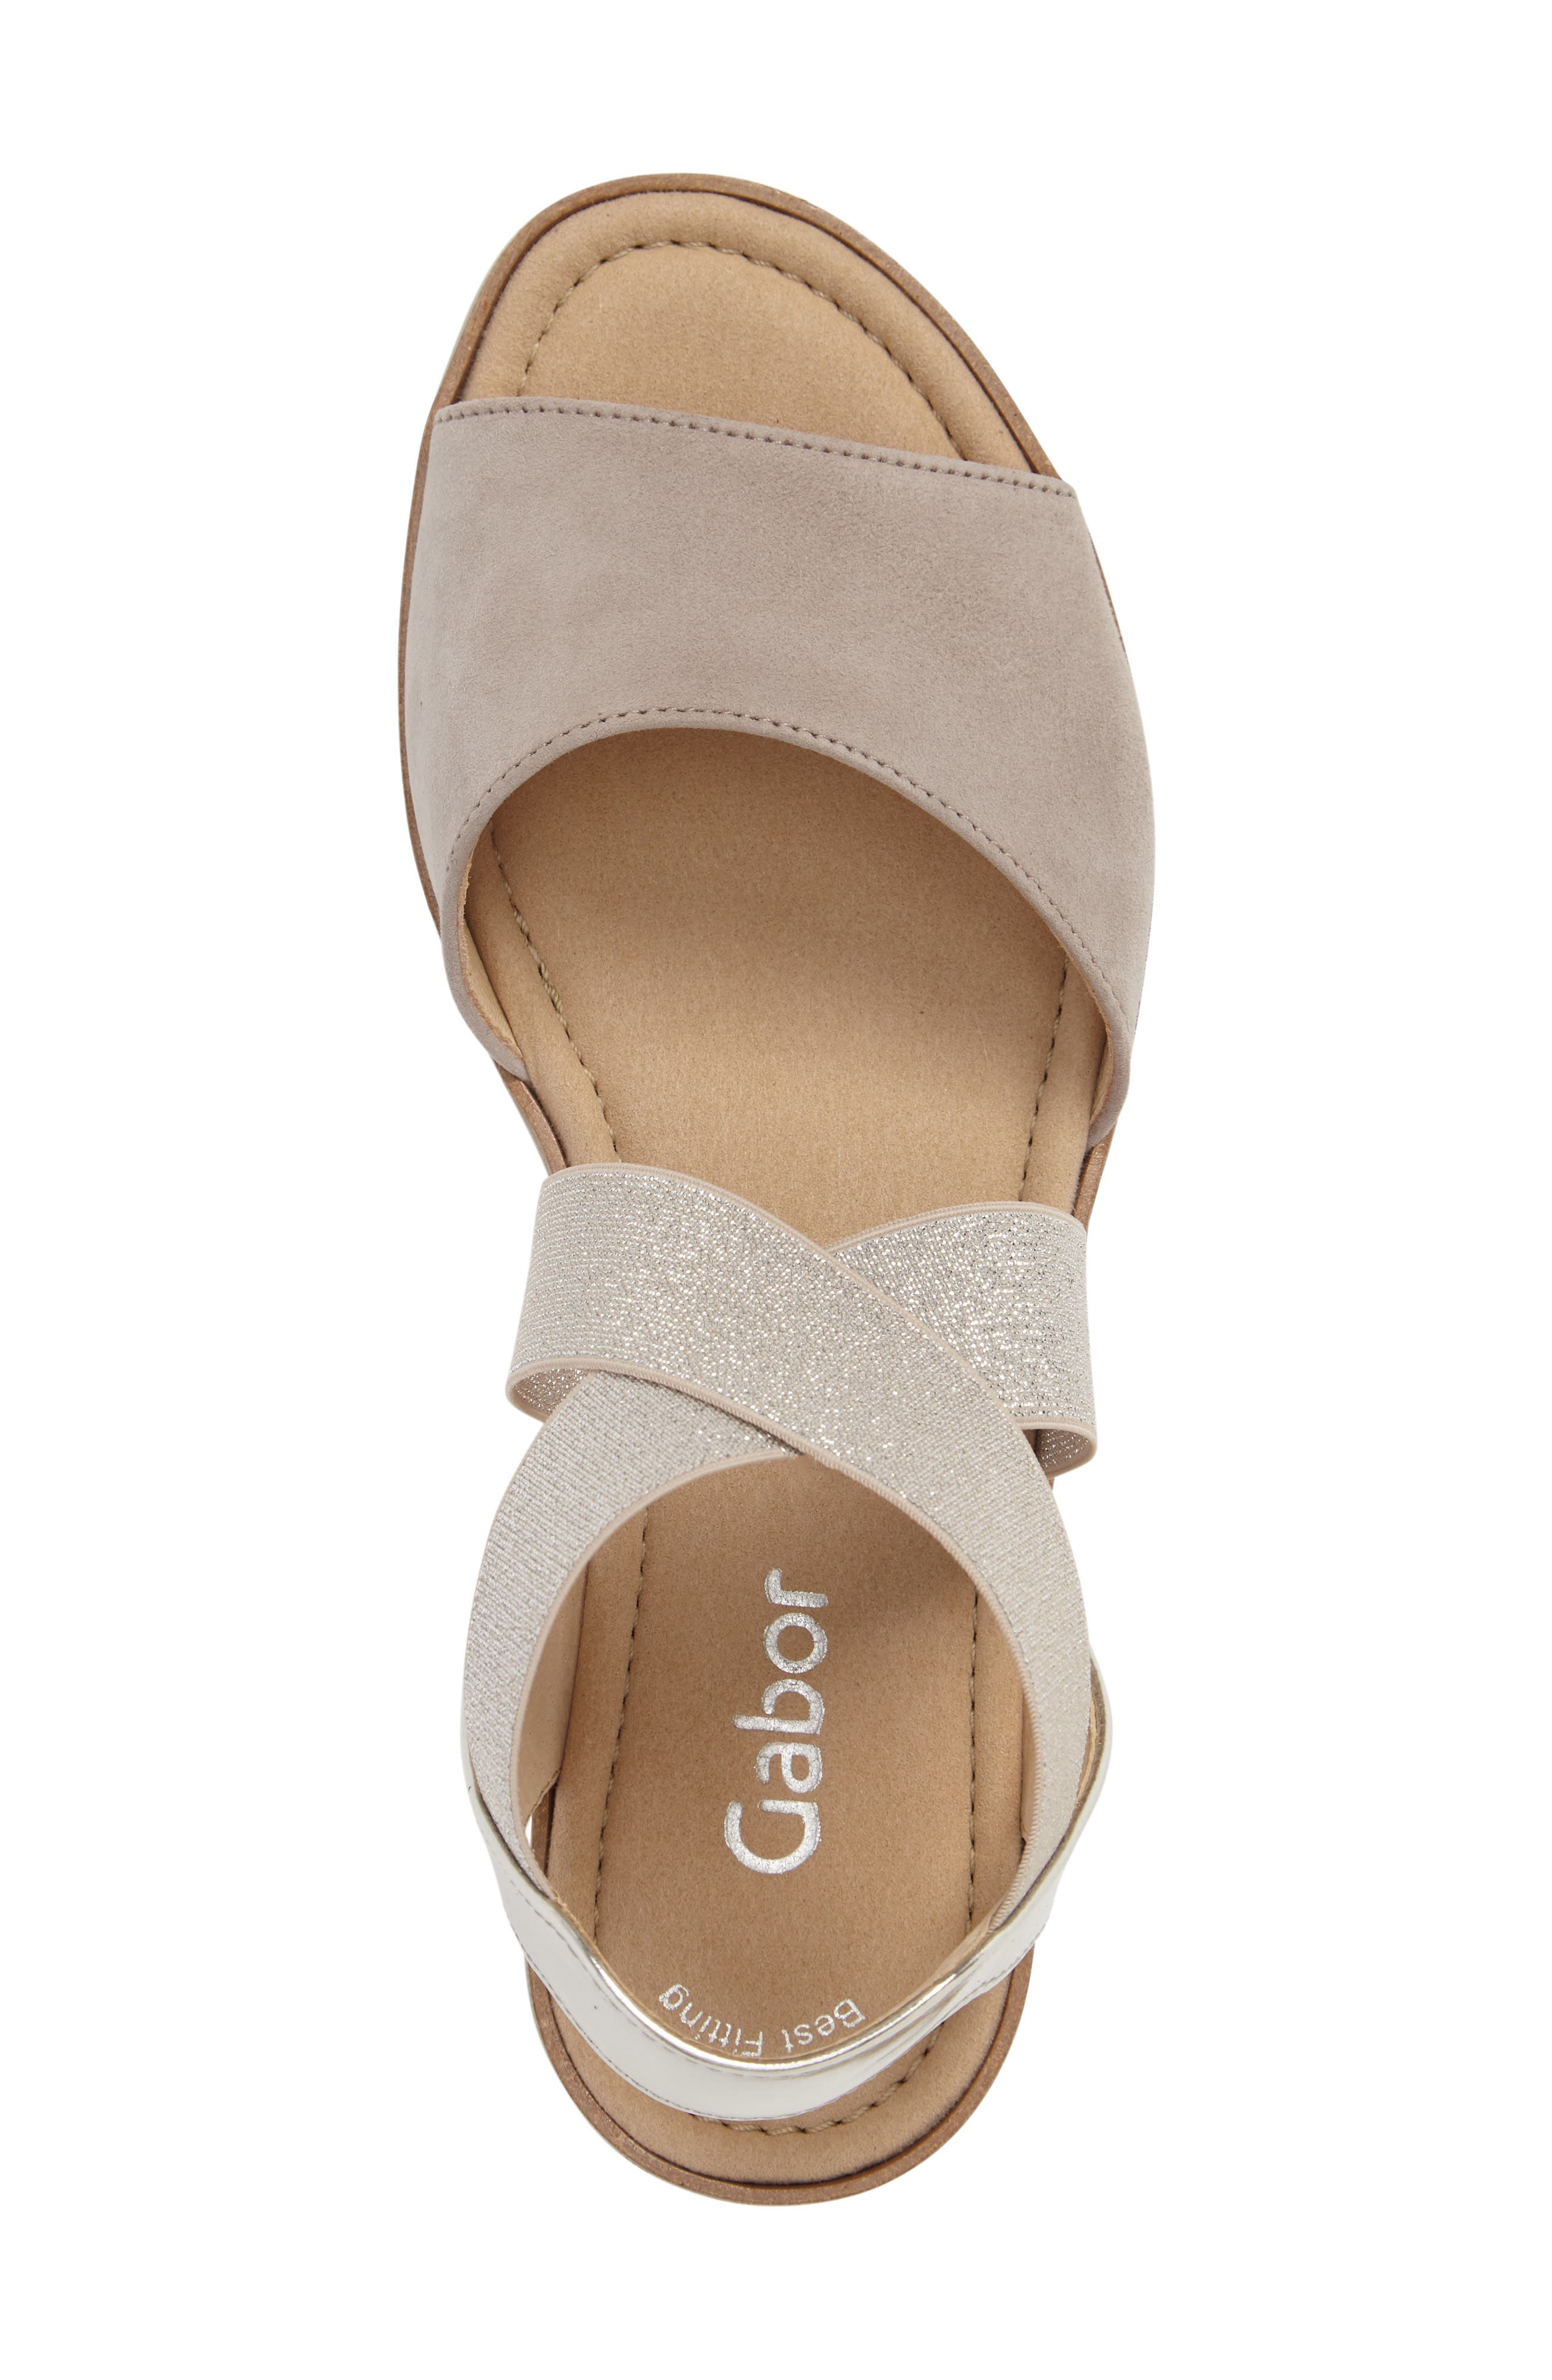 Strappy Sandal,                             Alternate thumbnail 5, color,                             Beige Leather